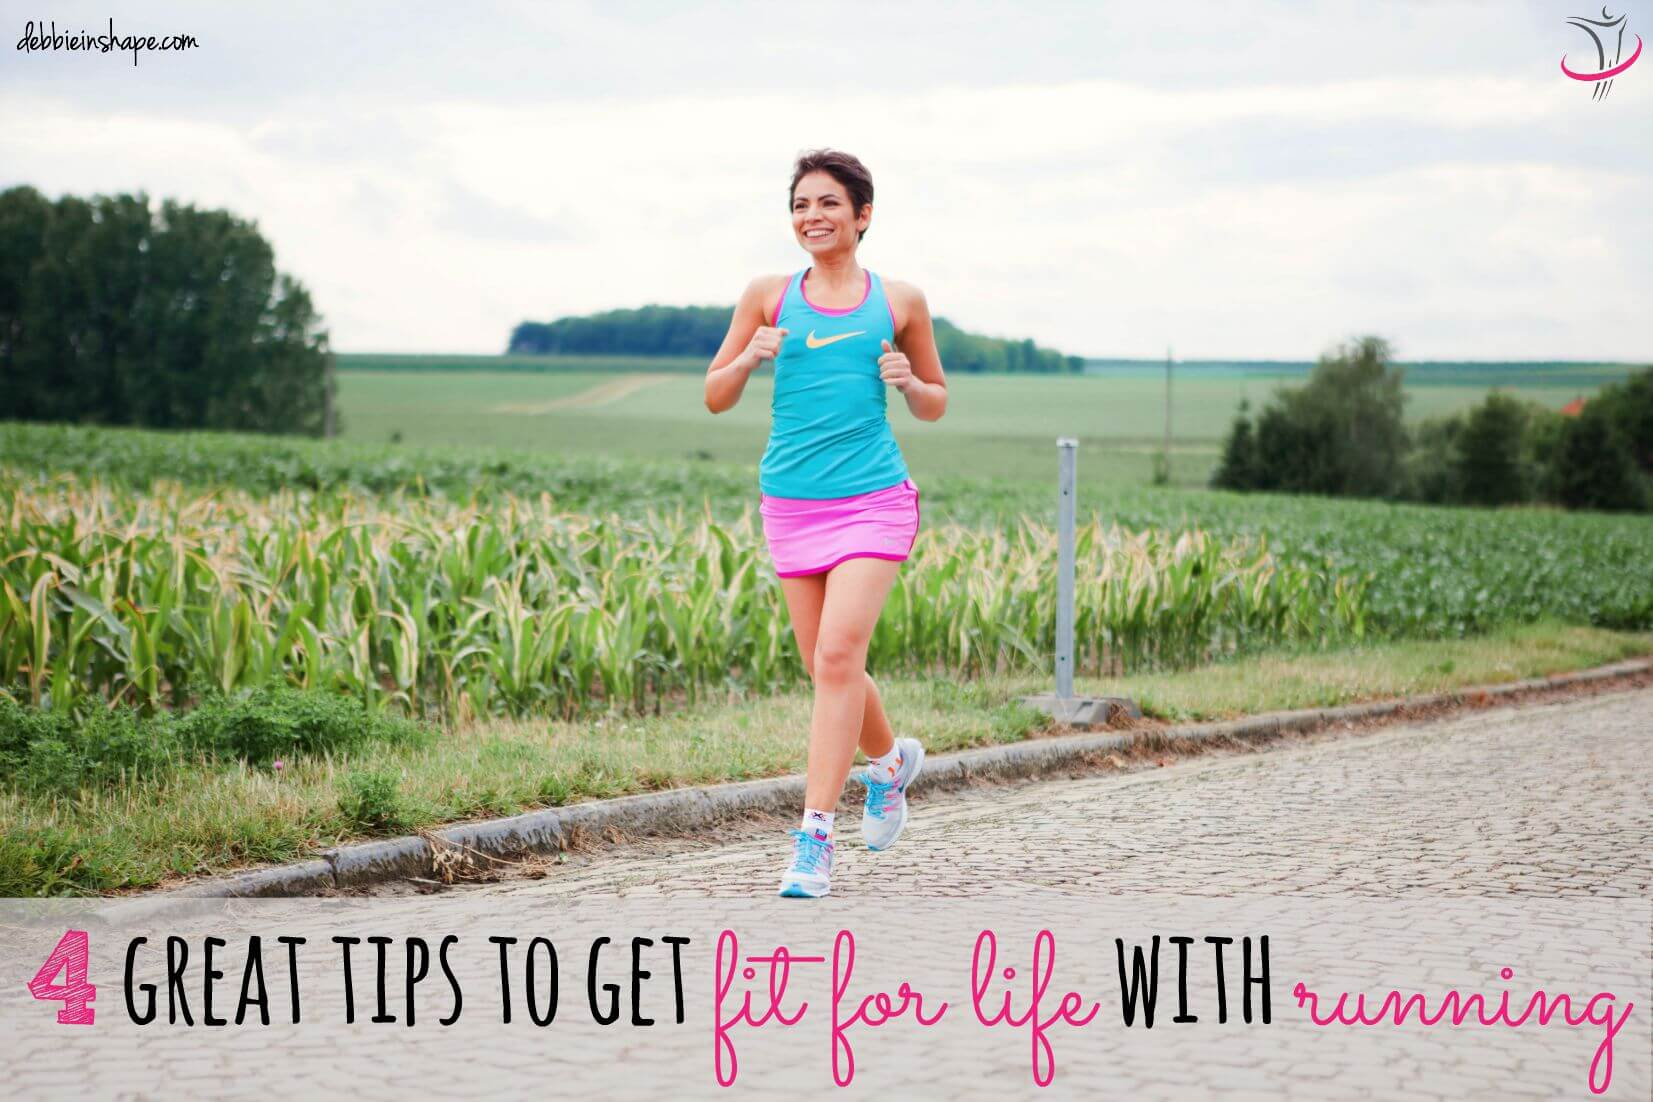 4 Great Tips To Get Fit For Life With Running5 min read